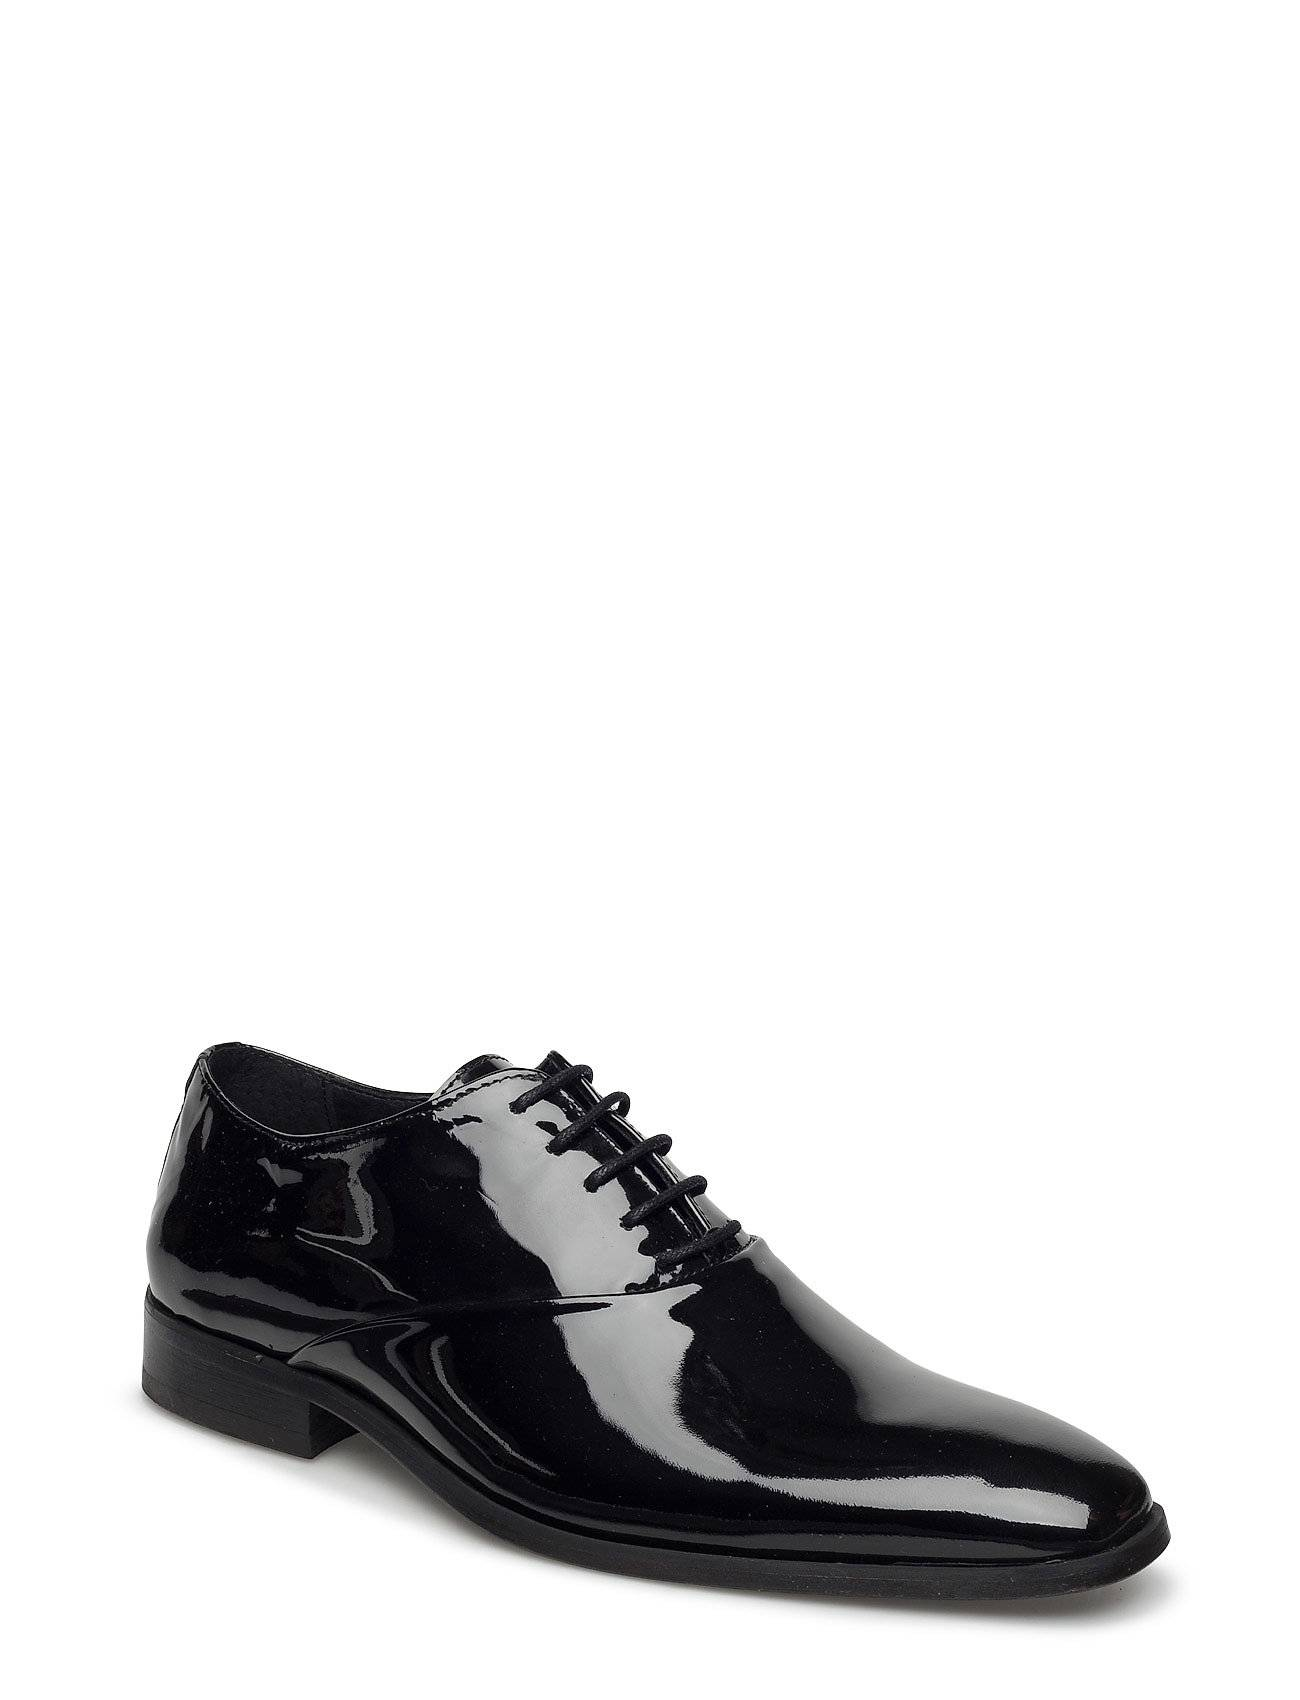 Playboy Footwear Patent Shoe Shoes Business Formal Shoes Musta Playboy Footwear